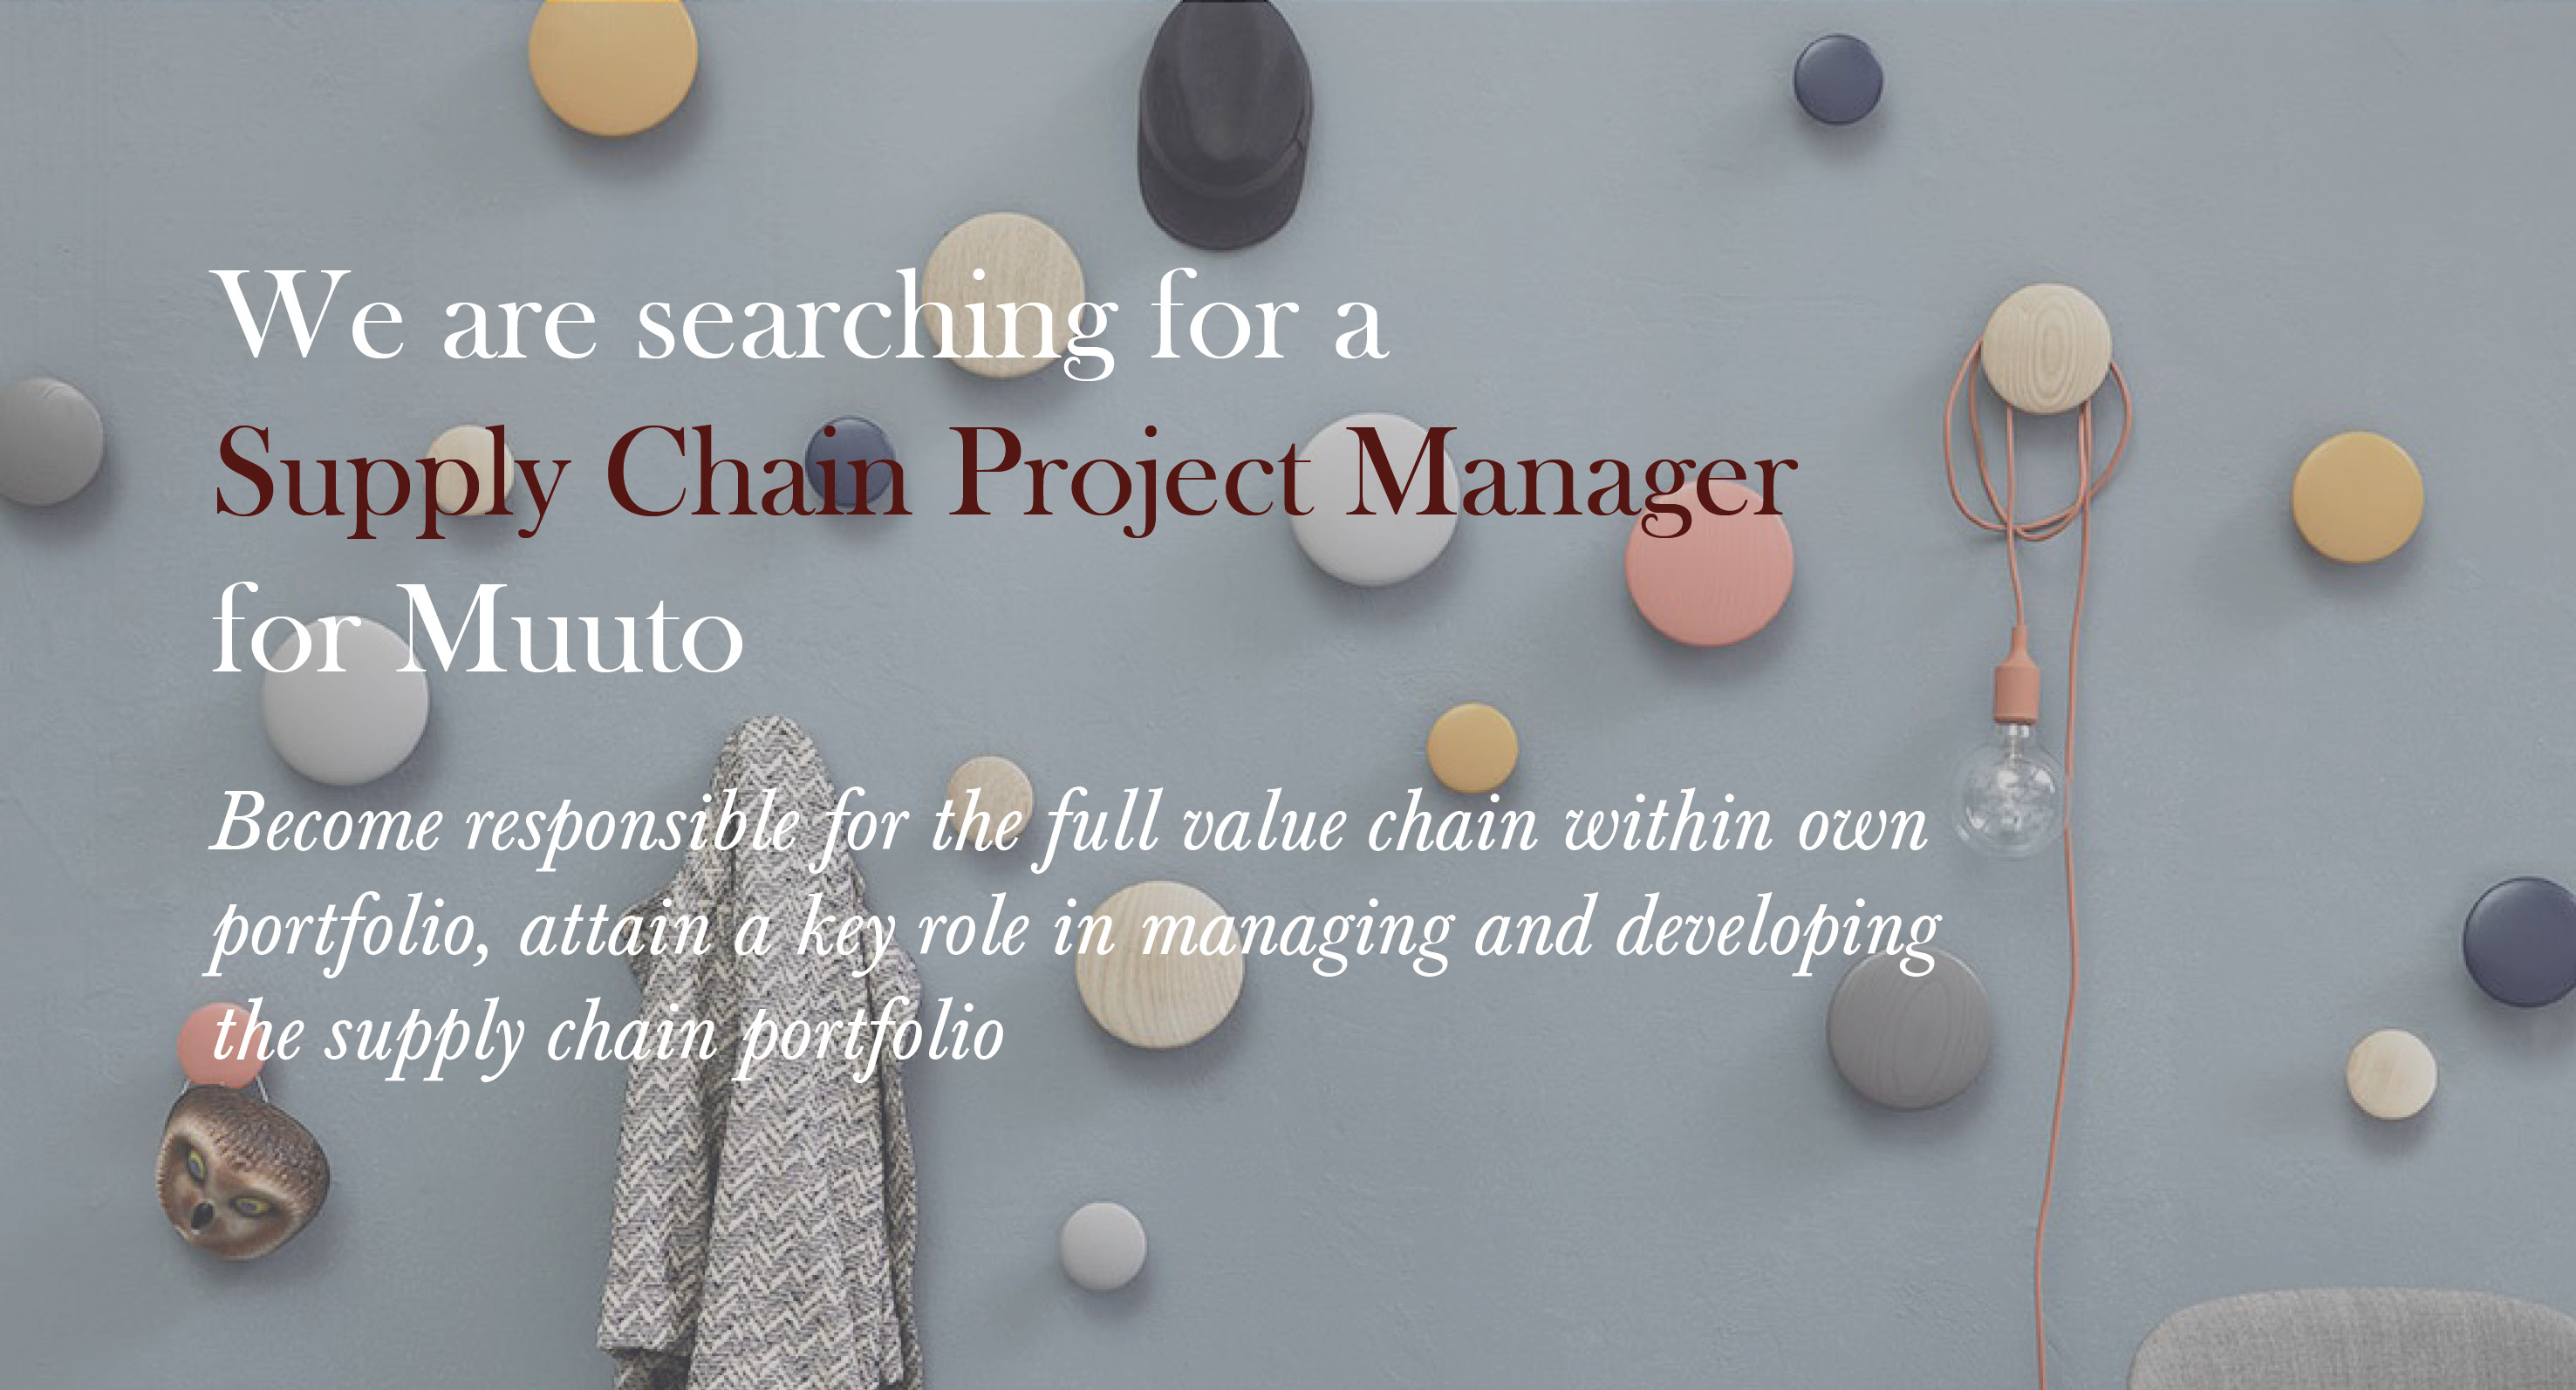 Supply Chain Project Manager Muuto